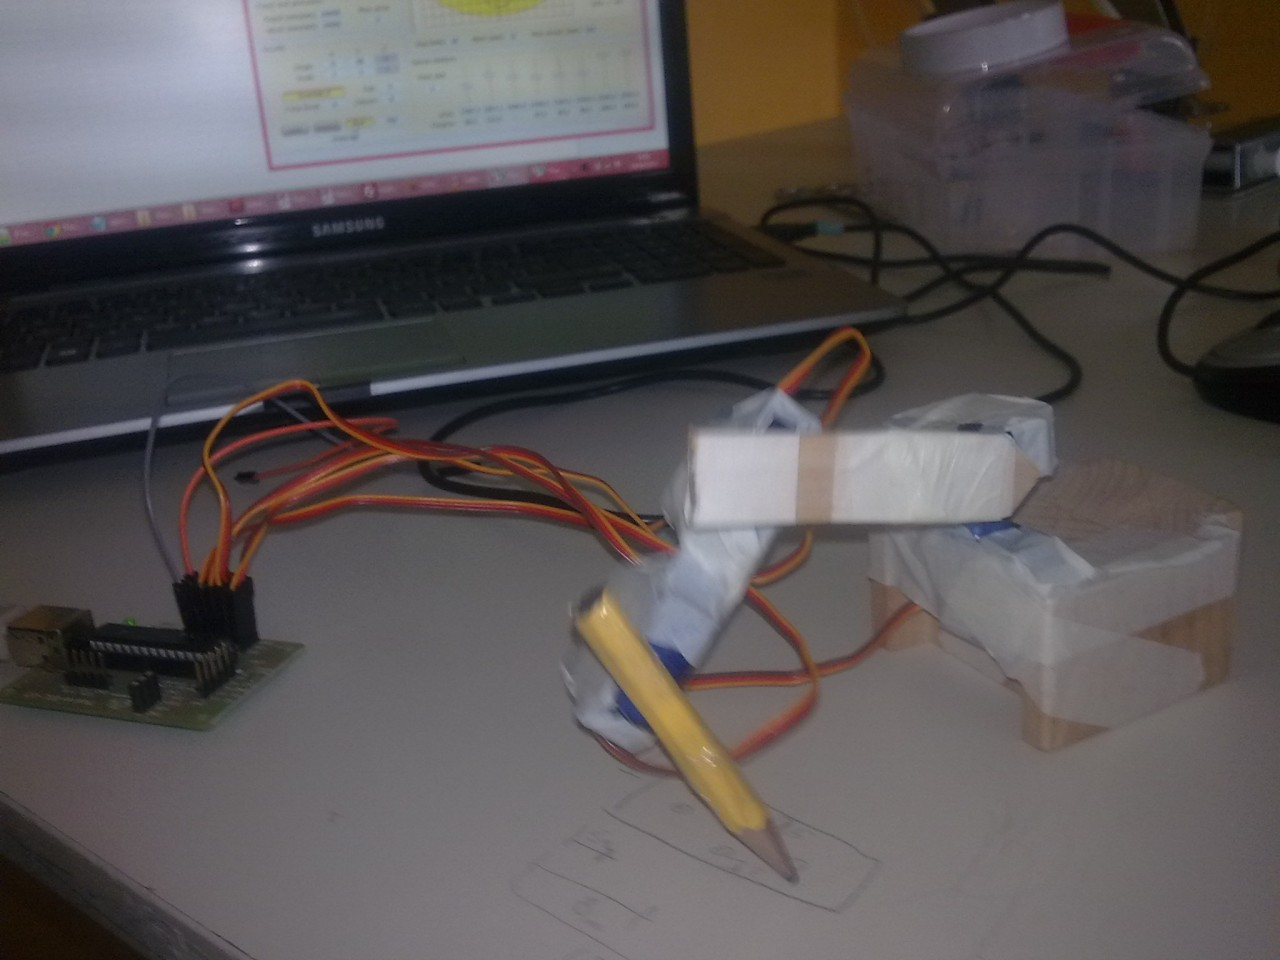 Systems Theremino Electrical Wiring Made Easy These Pictures Show Simple In Out Educational By Young Makers